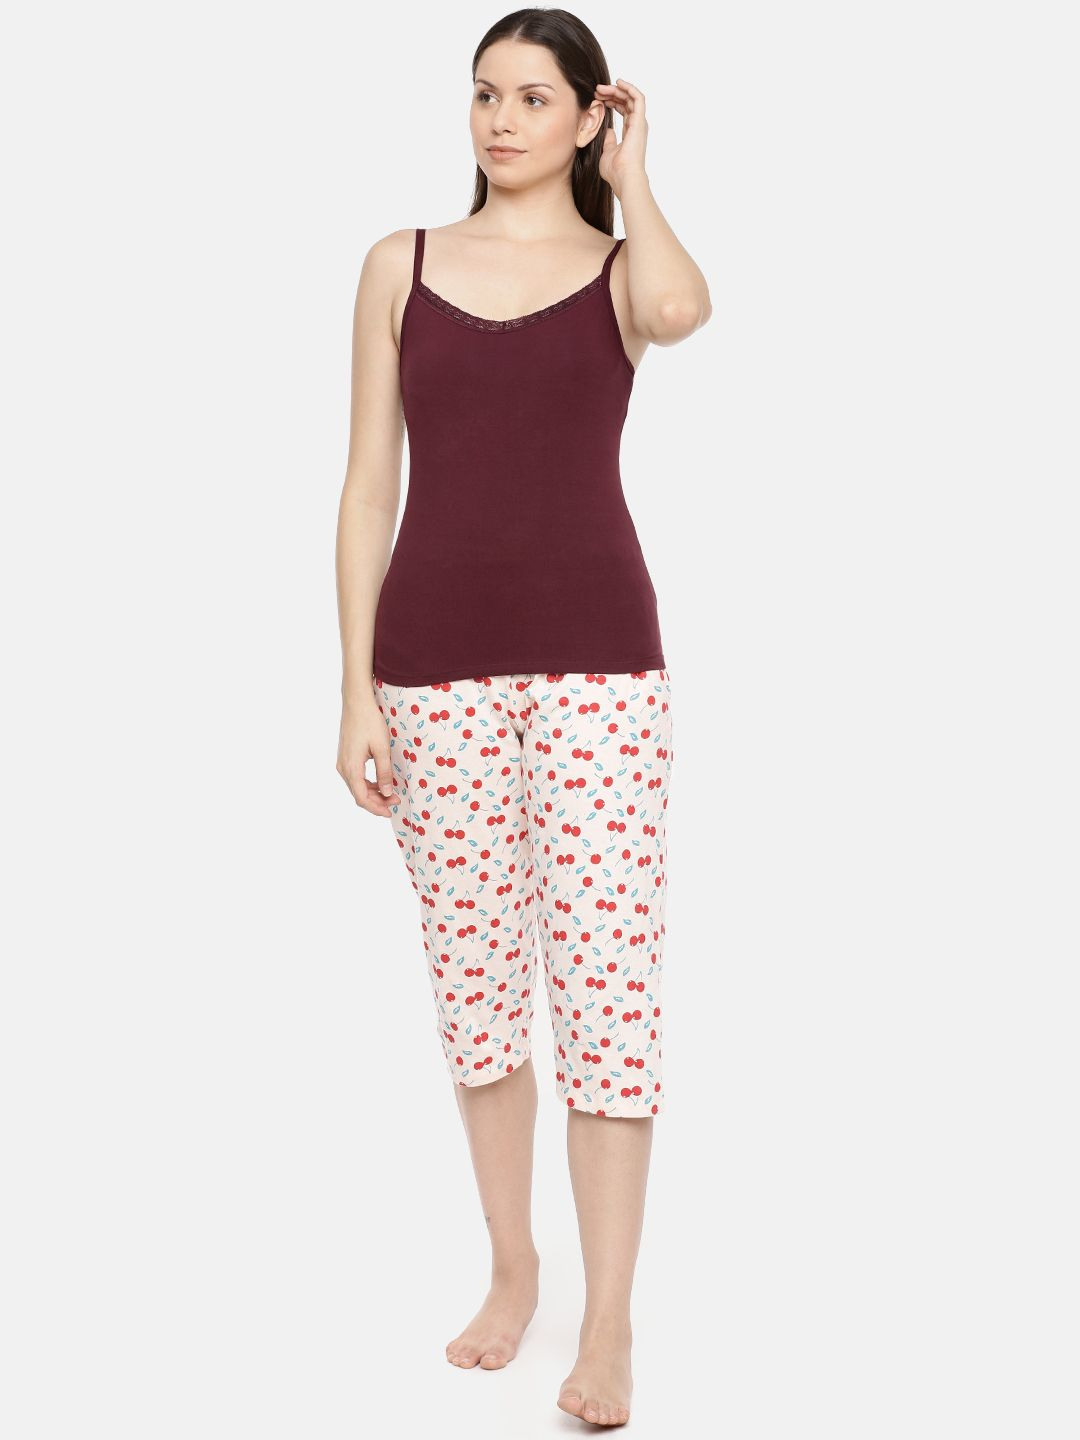 Slumber Jill Camisole with Bust Support in Colour -Bordeaux